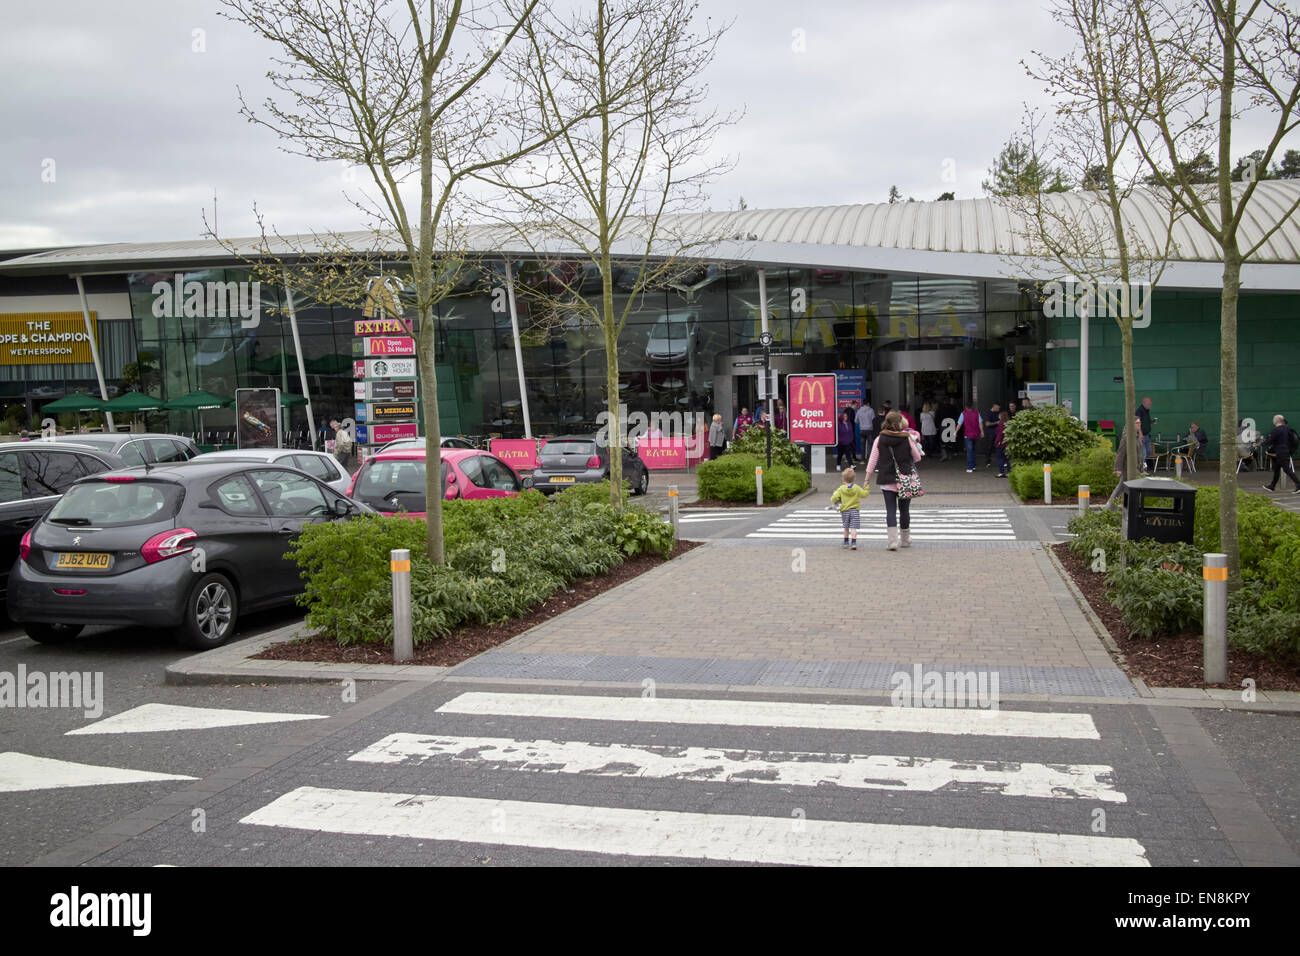 beaconsfield services m40 motorway service station england uk Stock Photo